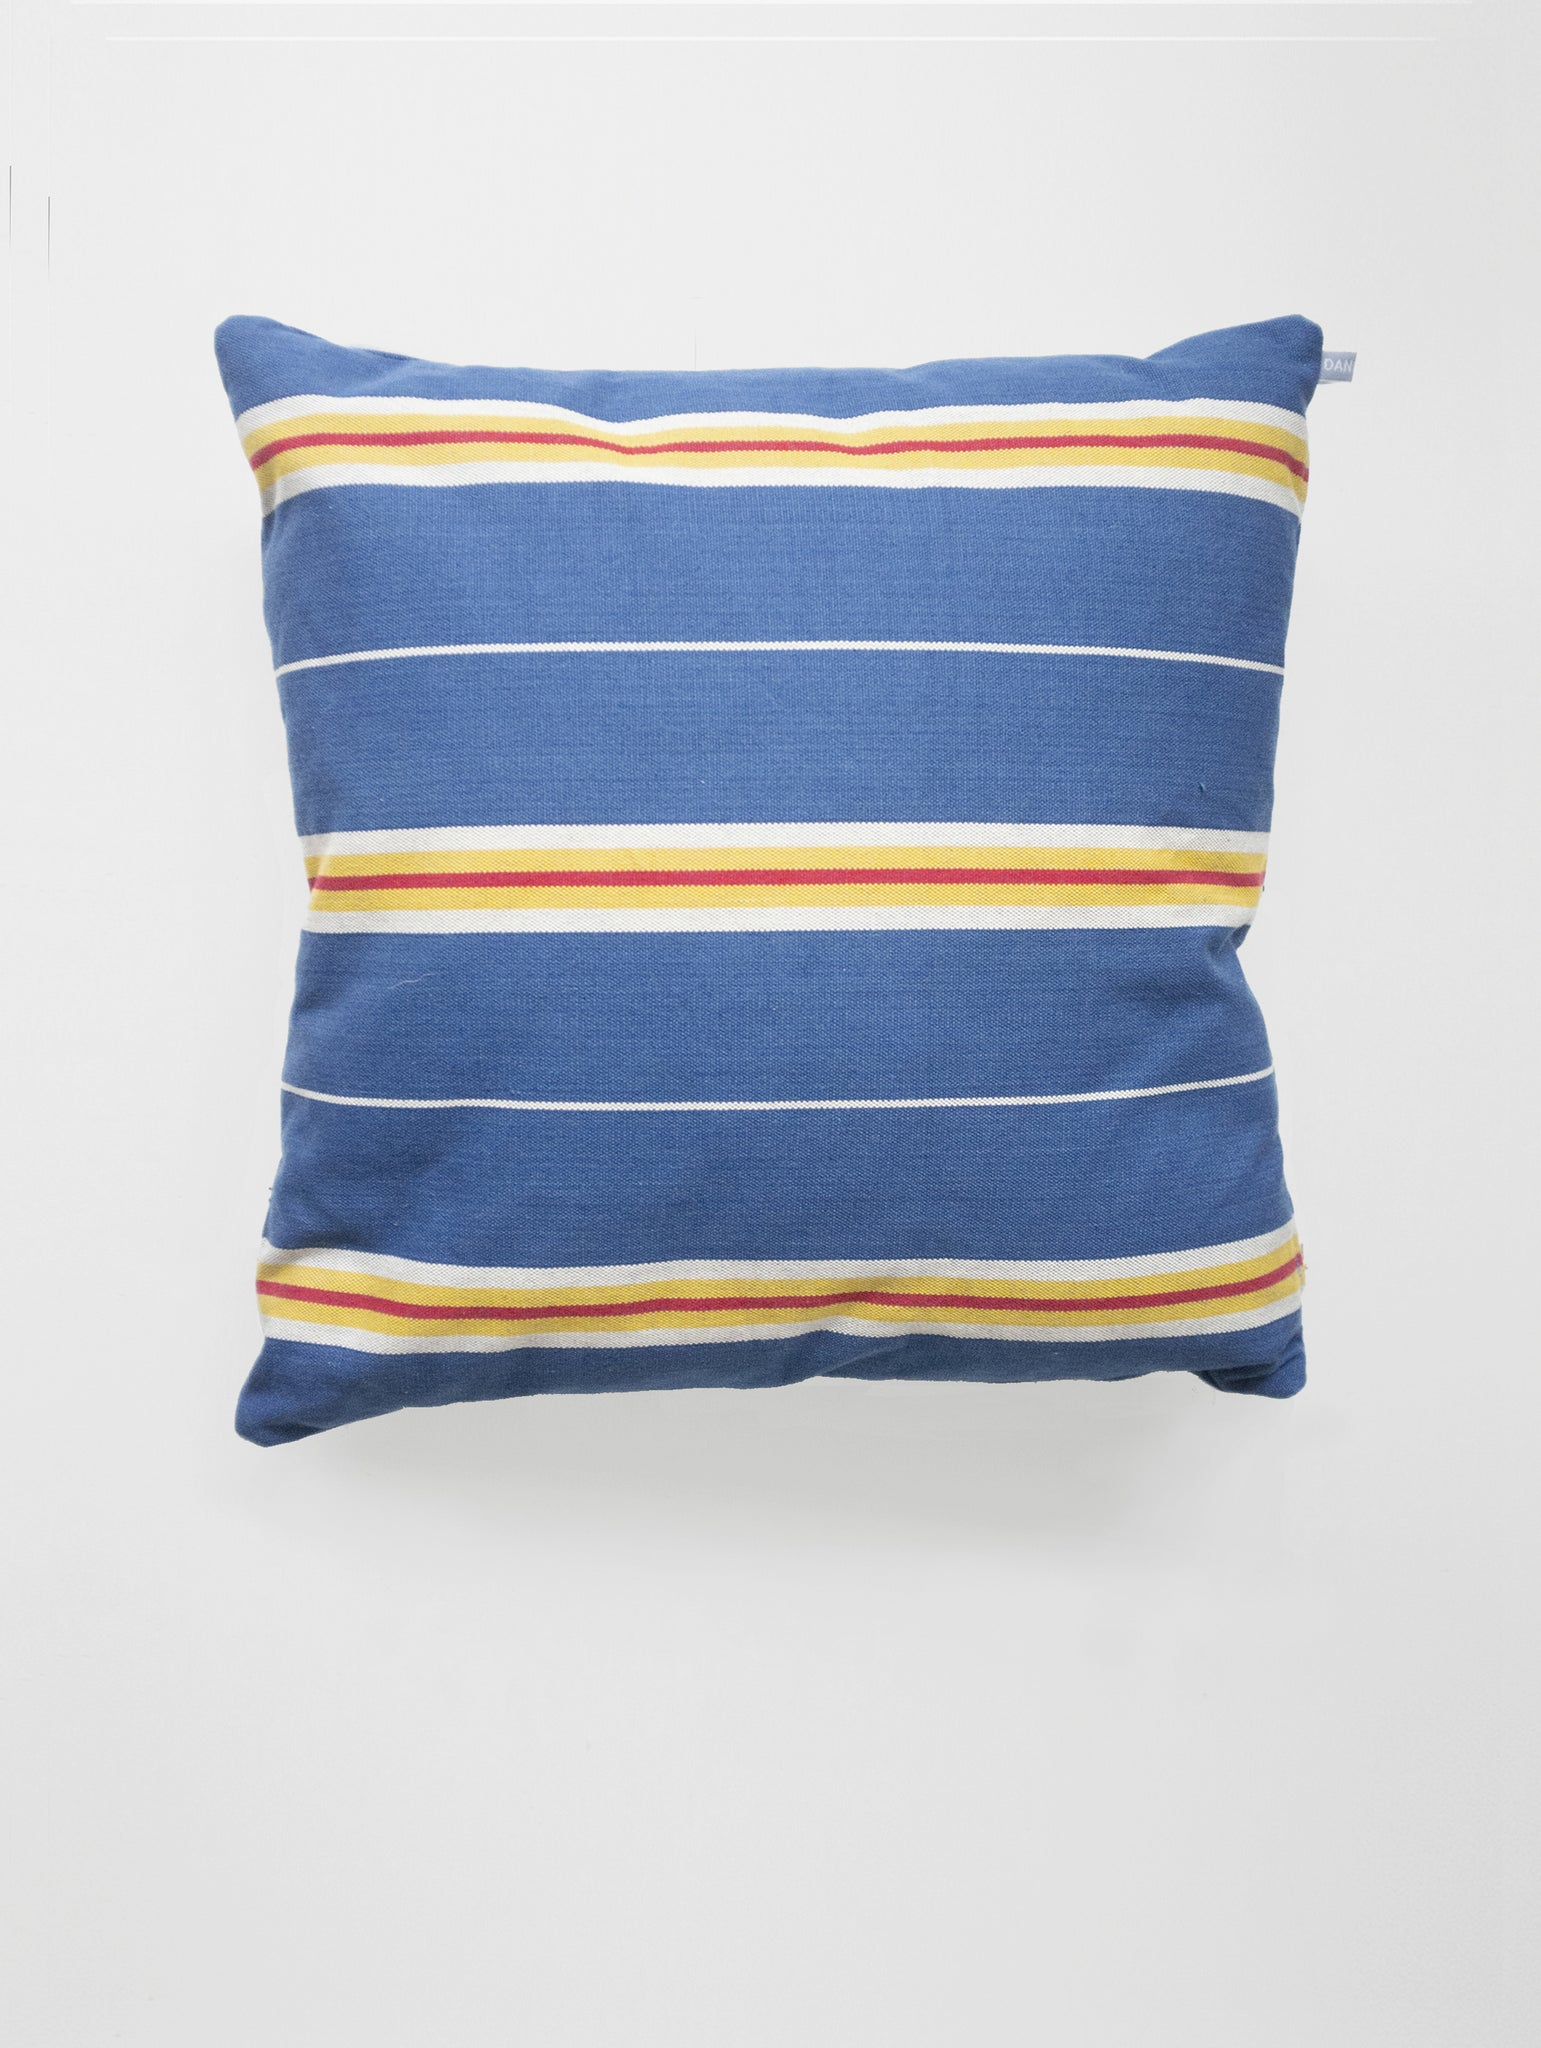 DANDY STAR CUSHION - STRIPE No.1